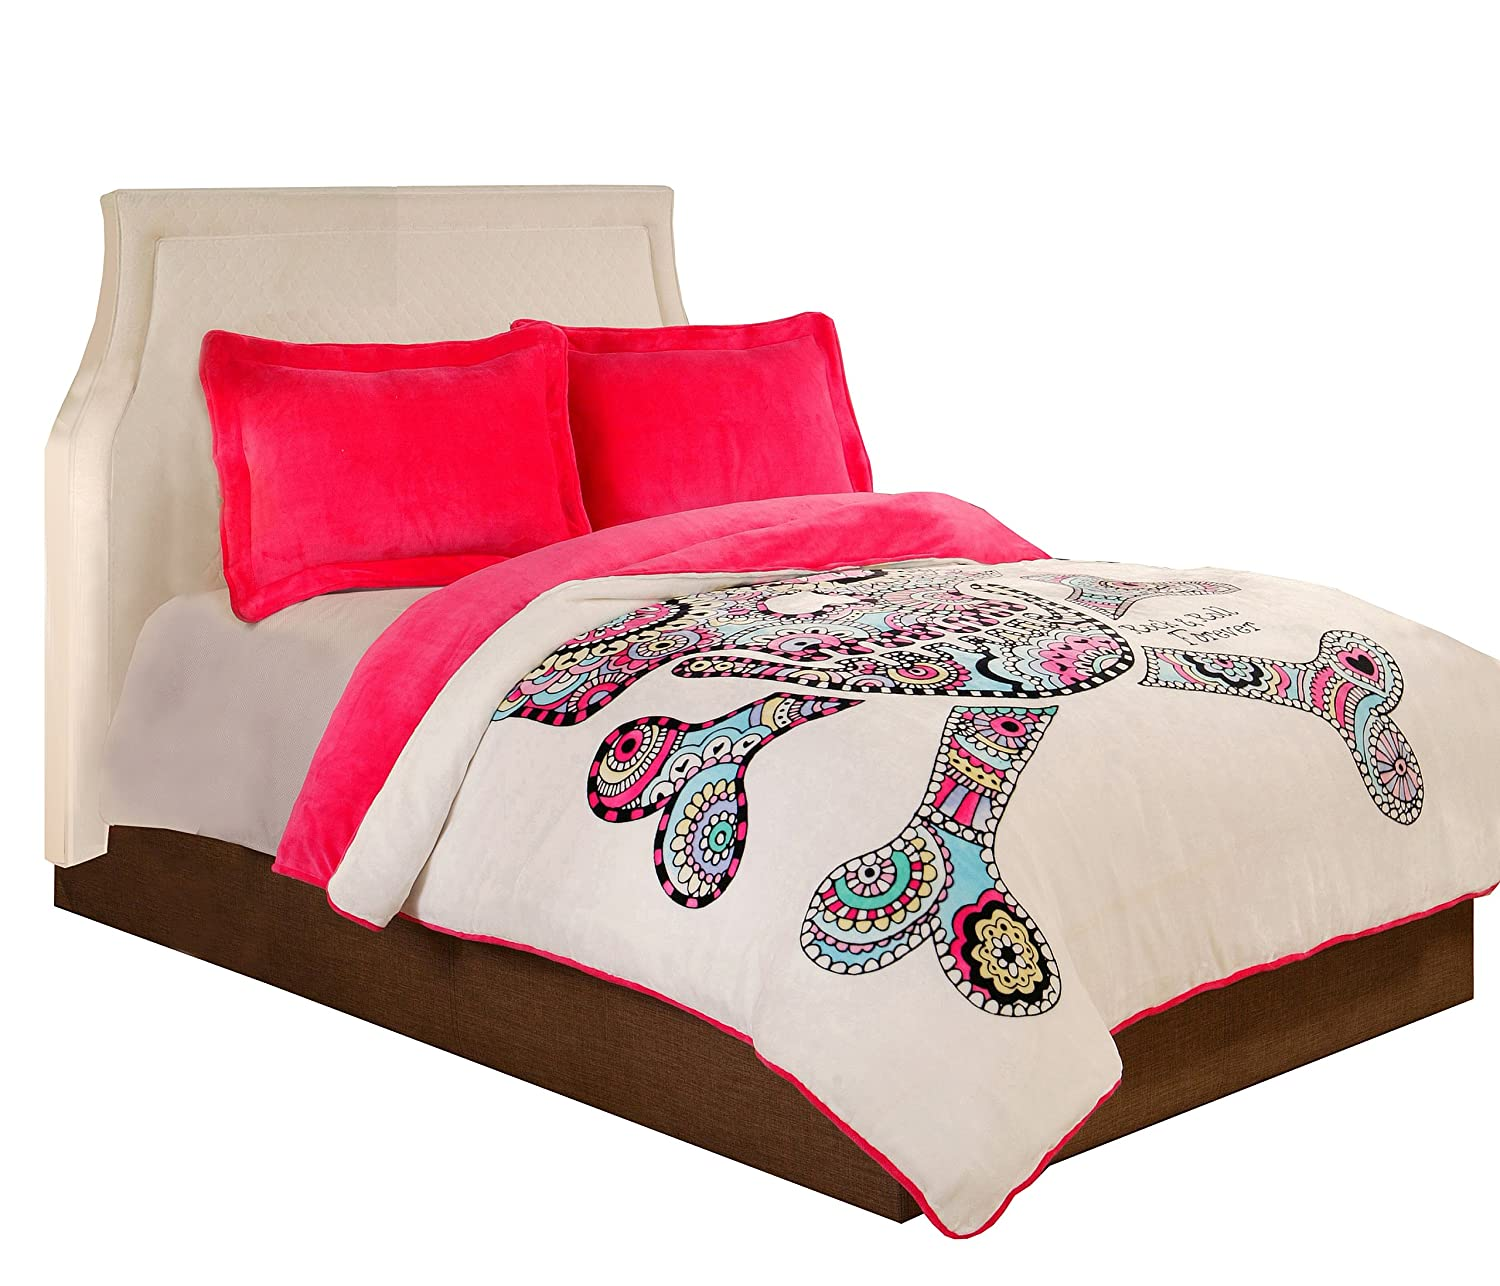 pink home duvet collection ponden bed ombre d velvet bedding resize